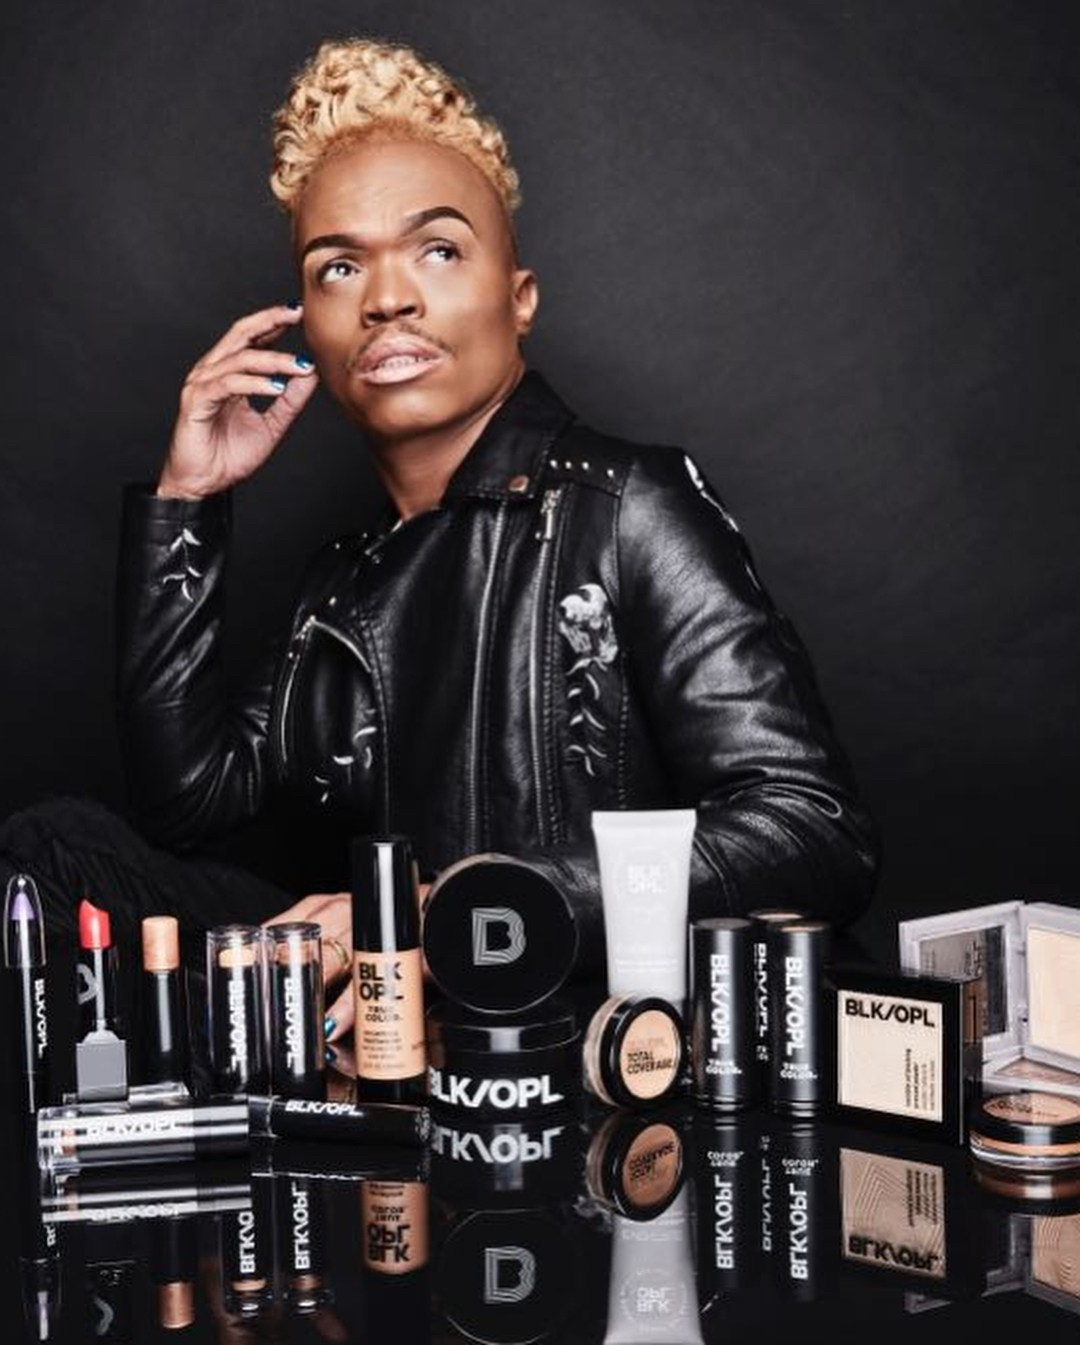 Somizi Mhlongo | The New Black Opal Brand Ambassador First African Male Brand Ambassador Black Opal South Africa Lysa Africa Magazine